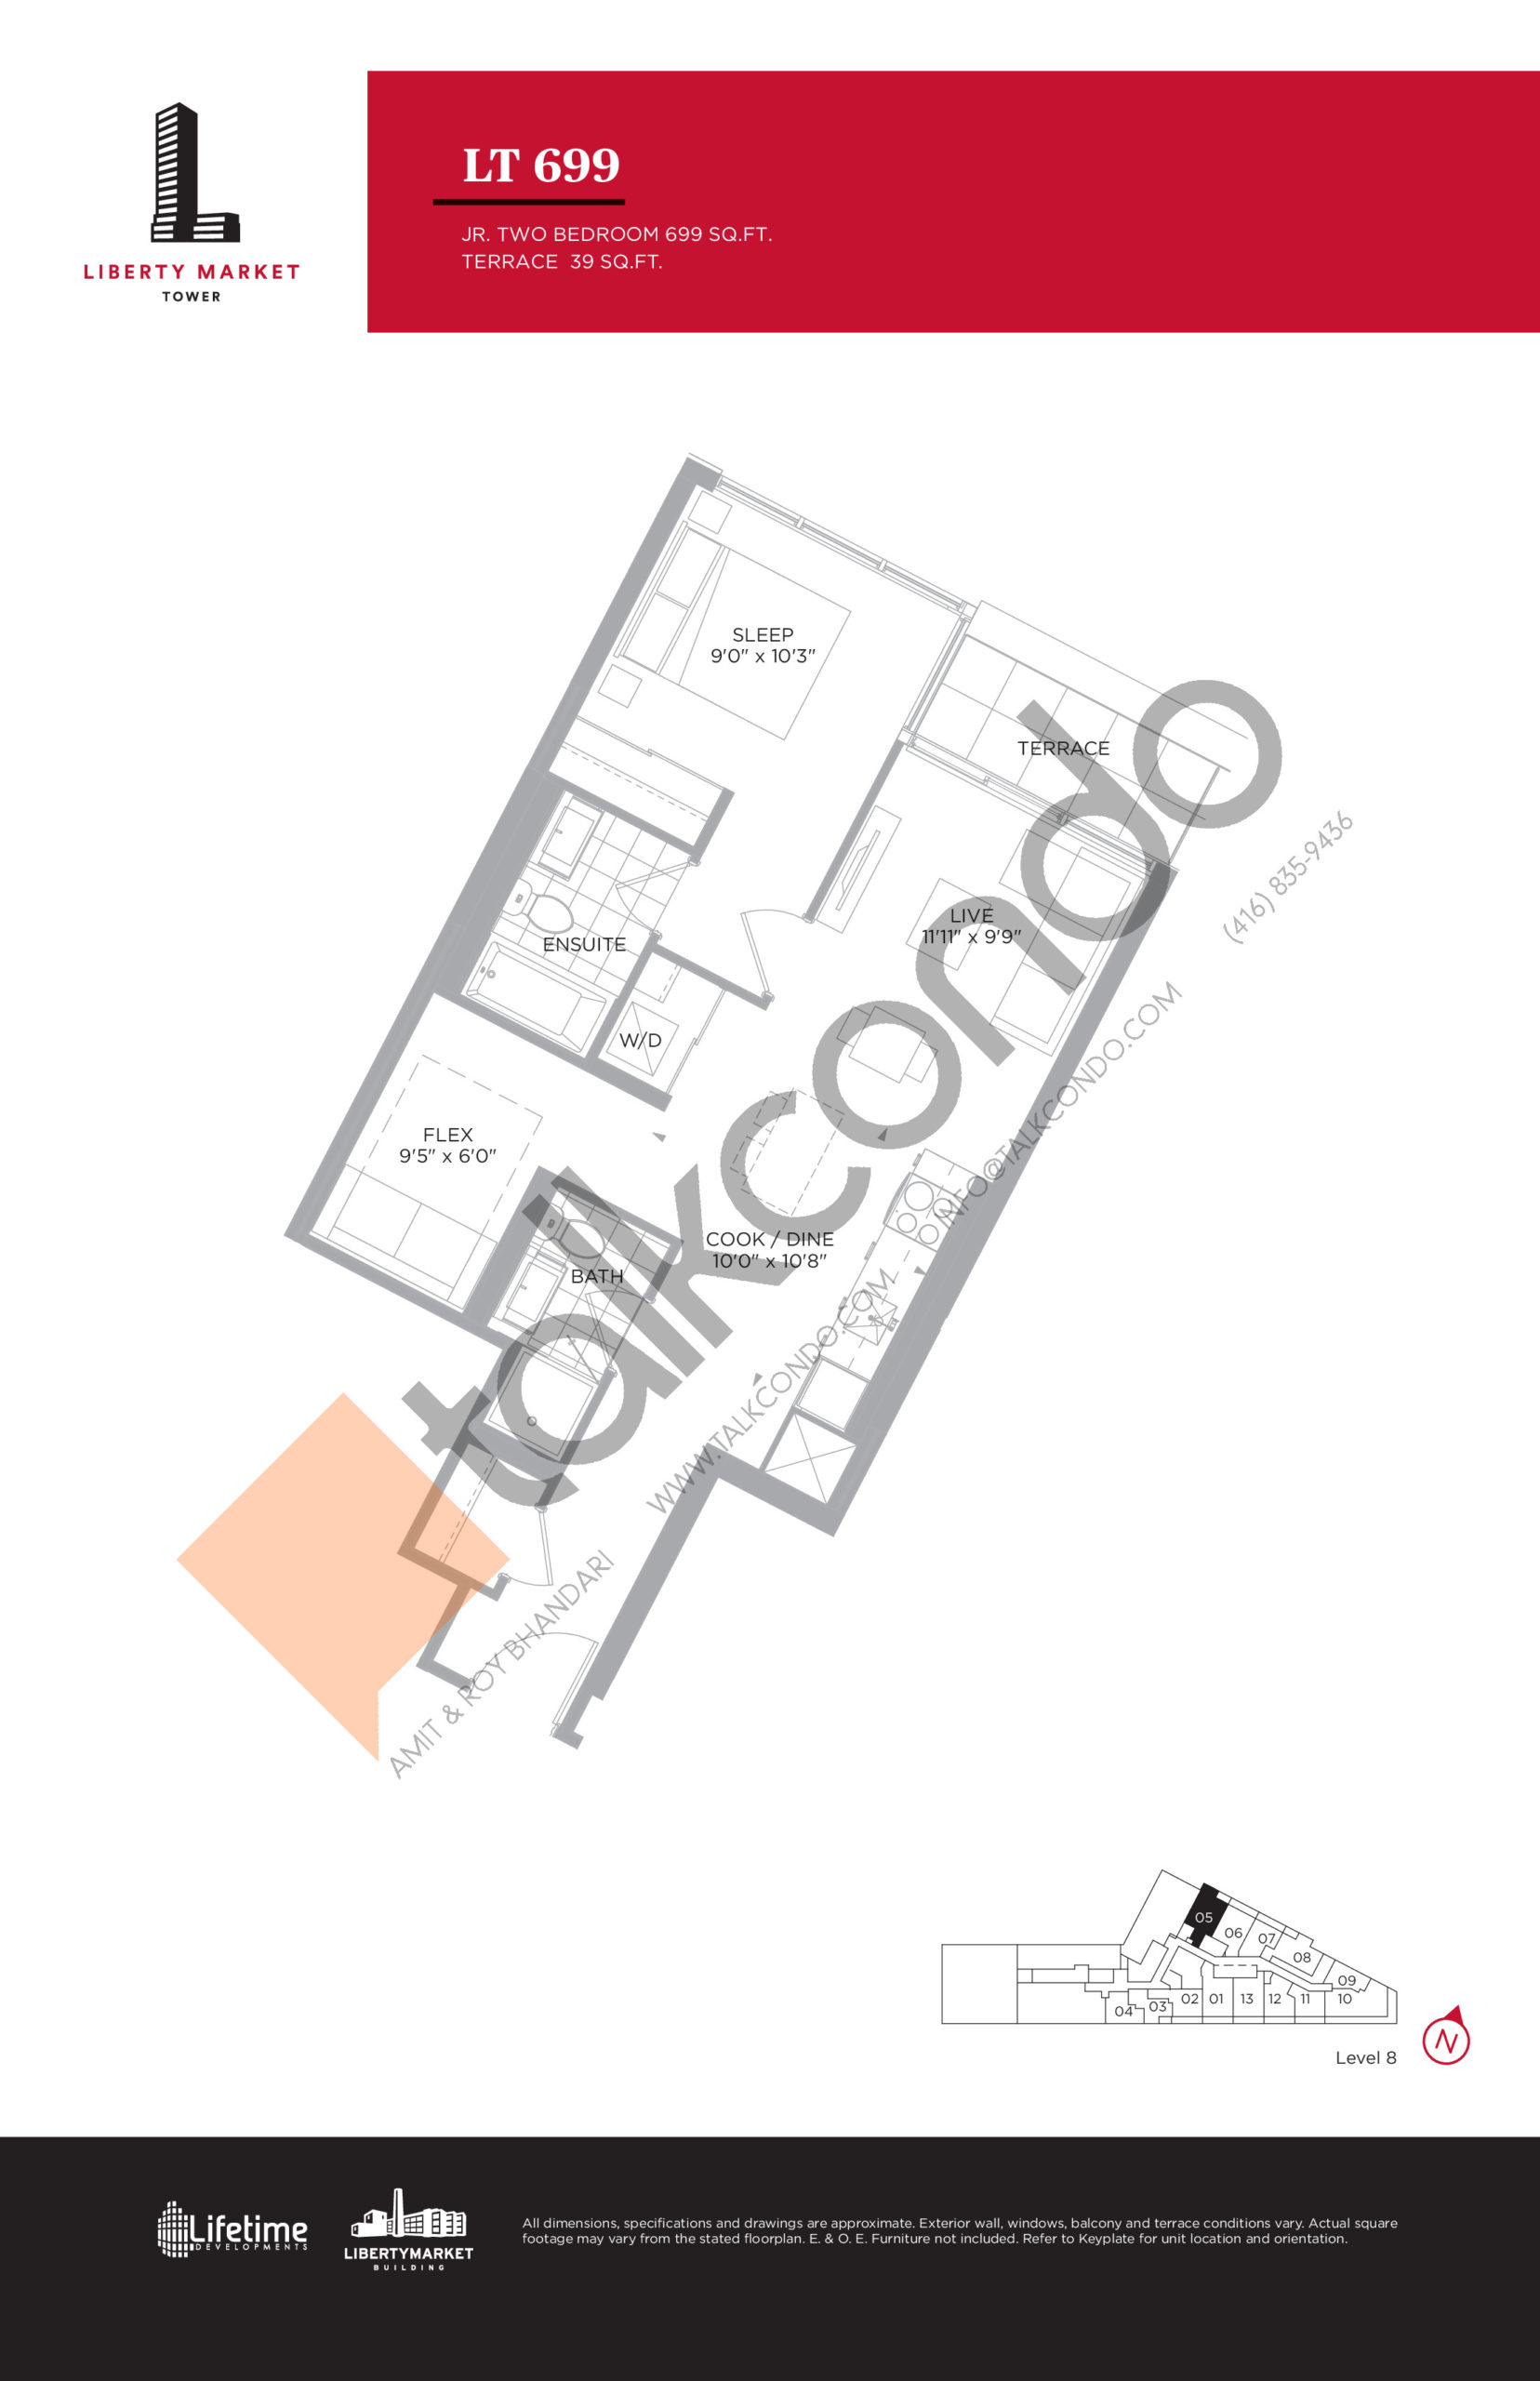 LT 699 - Terrace Collection Floor Plan at Liberty Market Tower Condos - 699 sq.ft